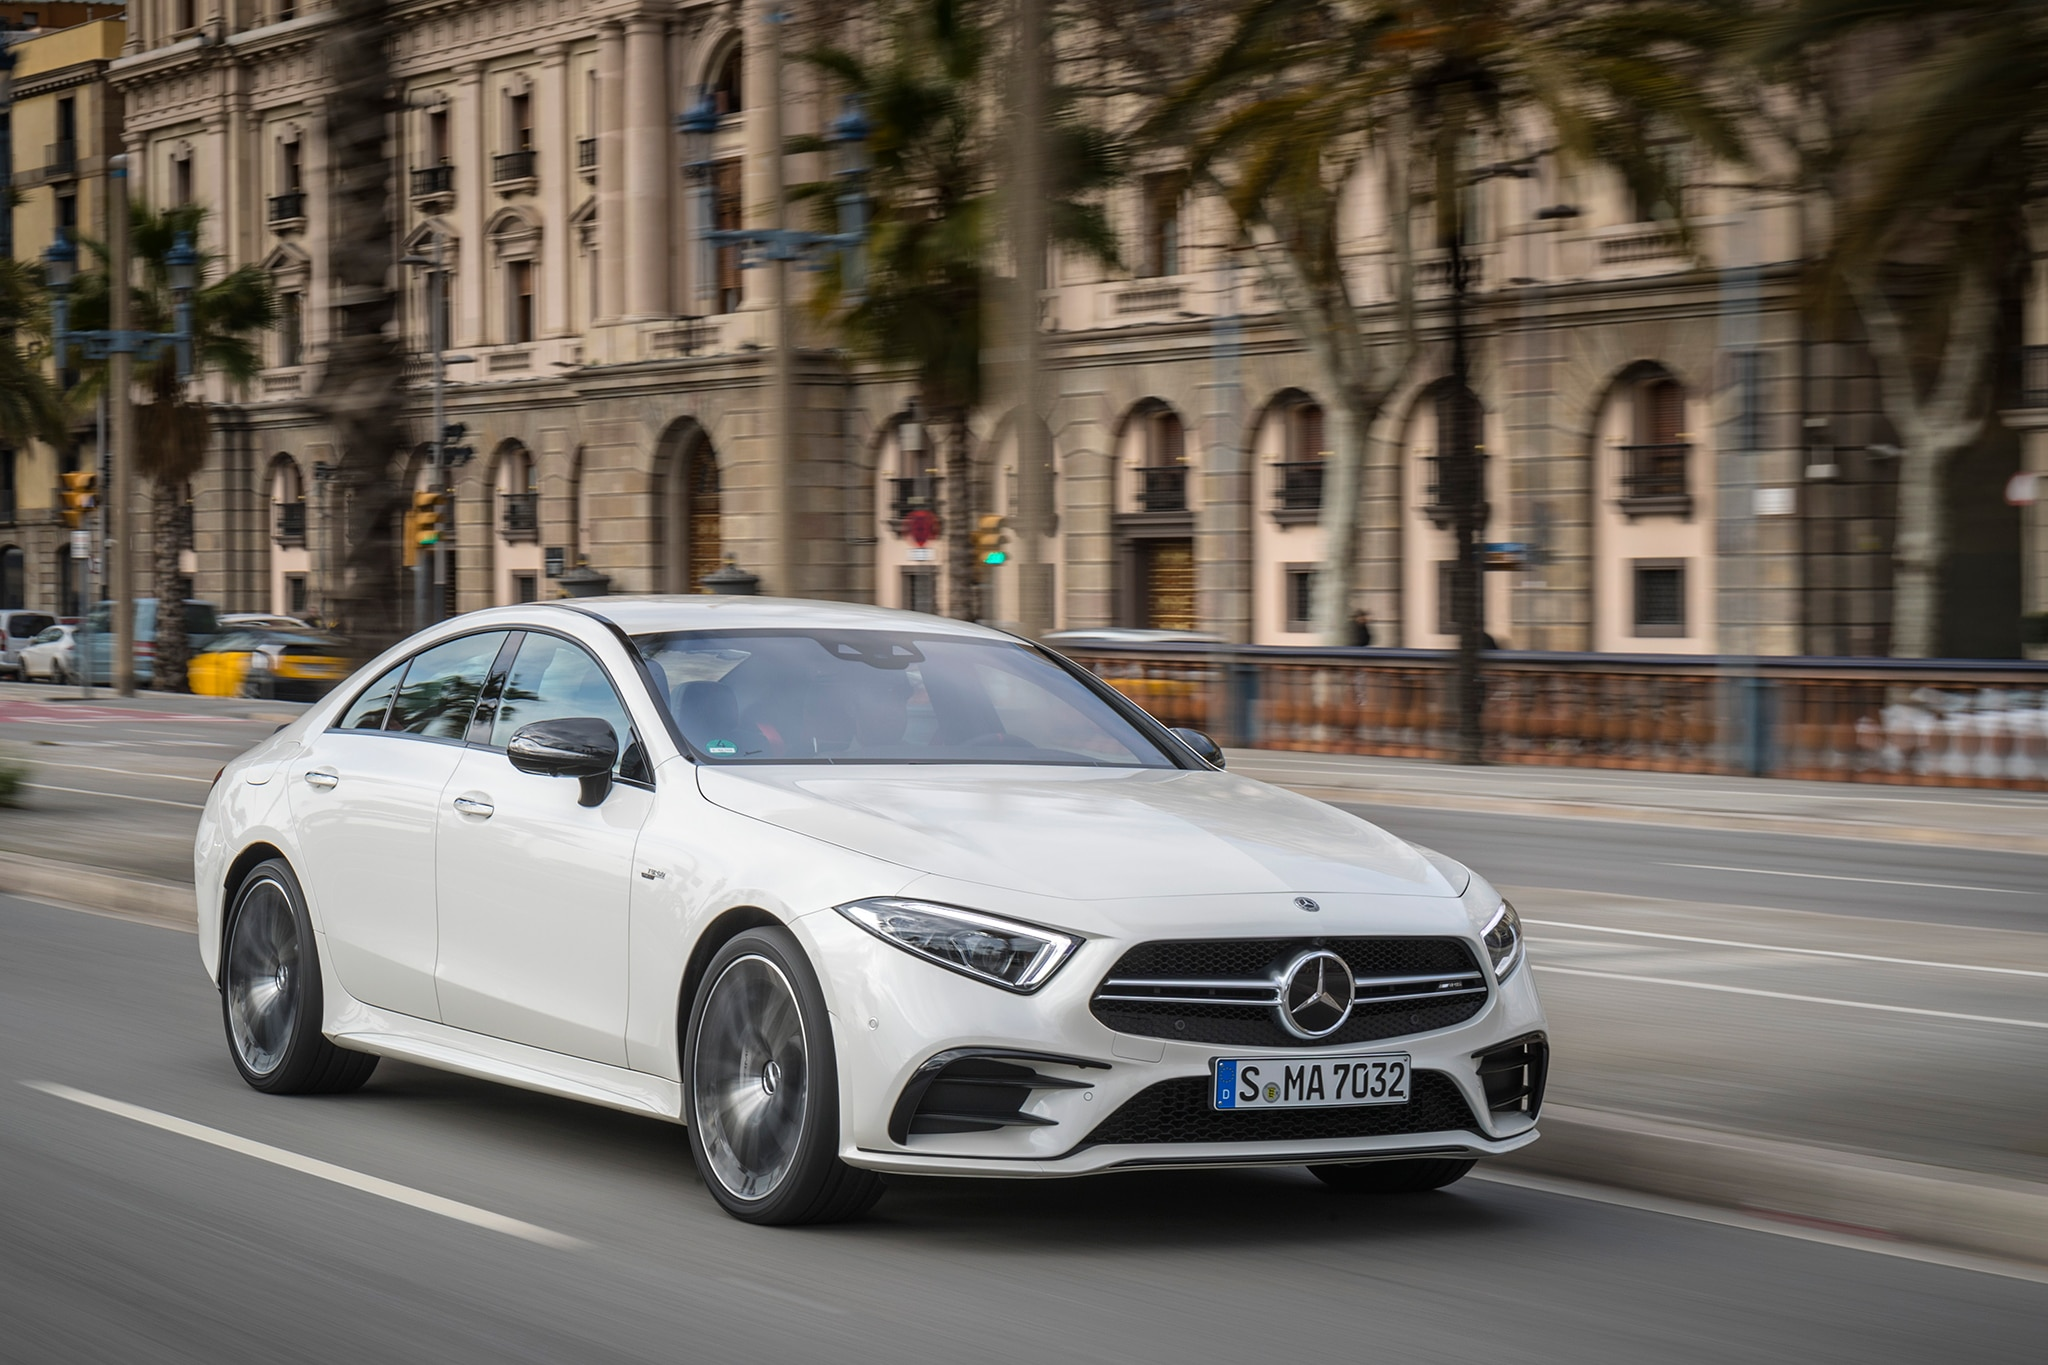 http://st.automobilemag.com/uploads/sites/11/2018/03/2019-Mercedes-AMG-CLS53-front-three-quarter-in-motion-05.jpg